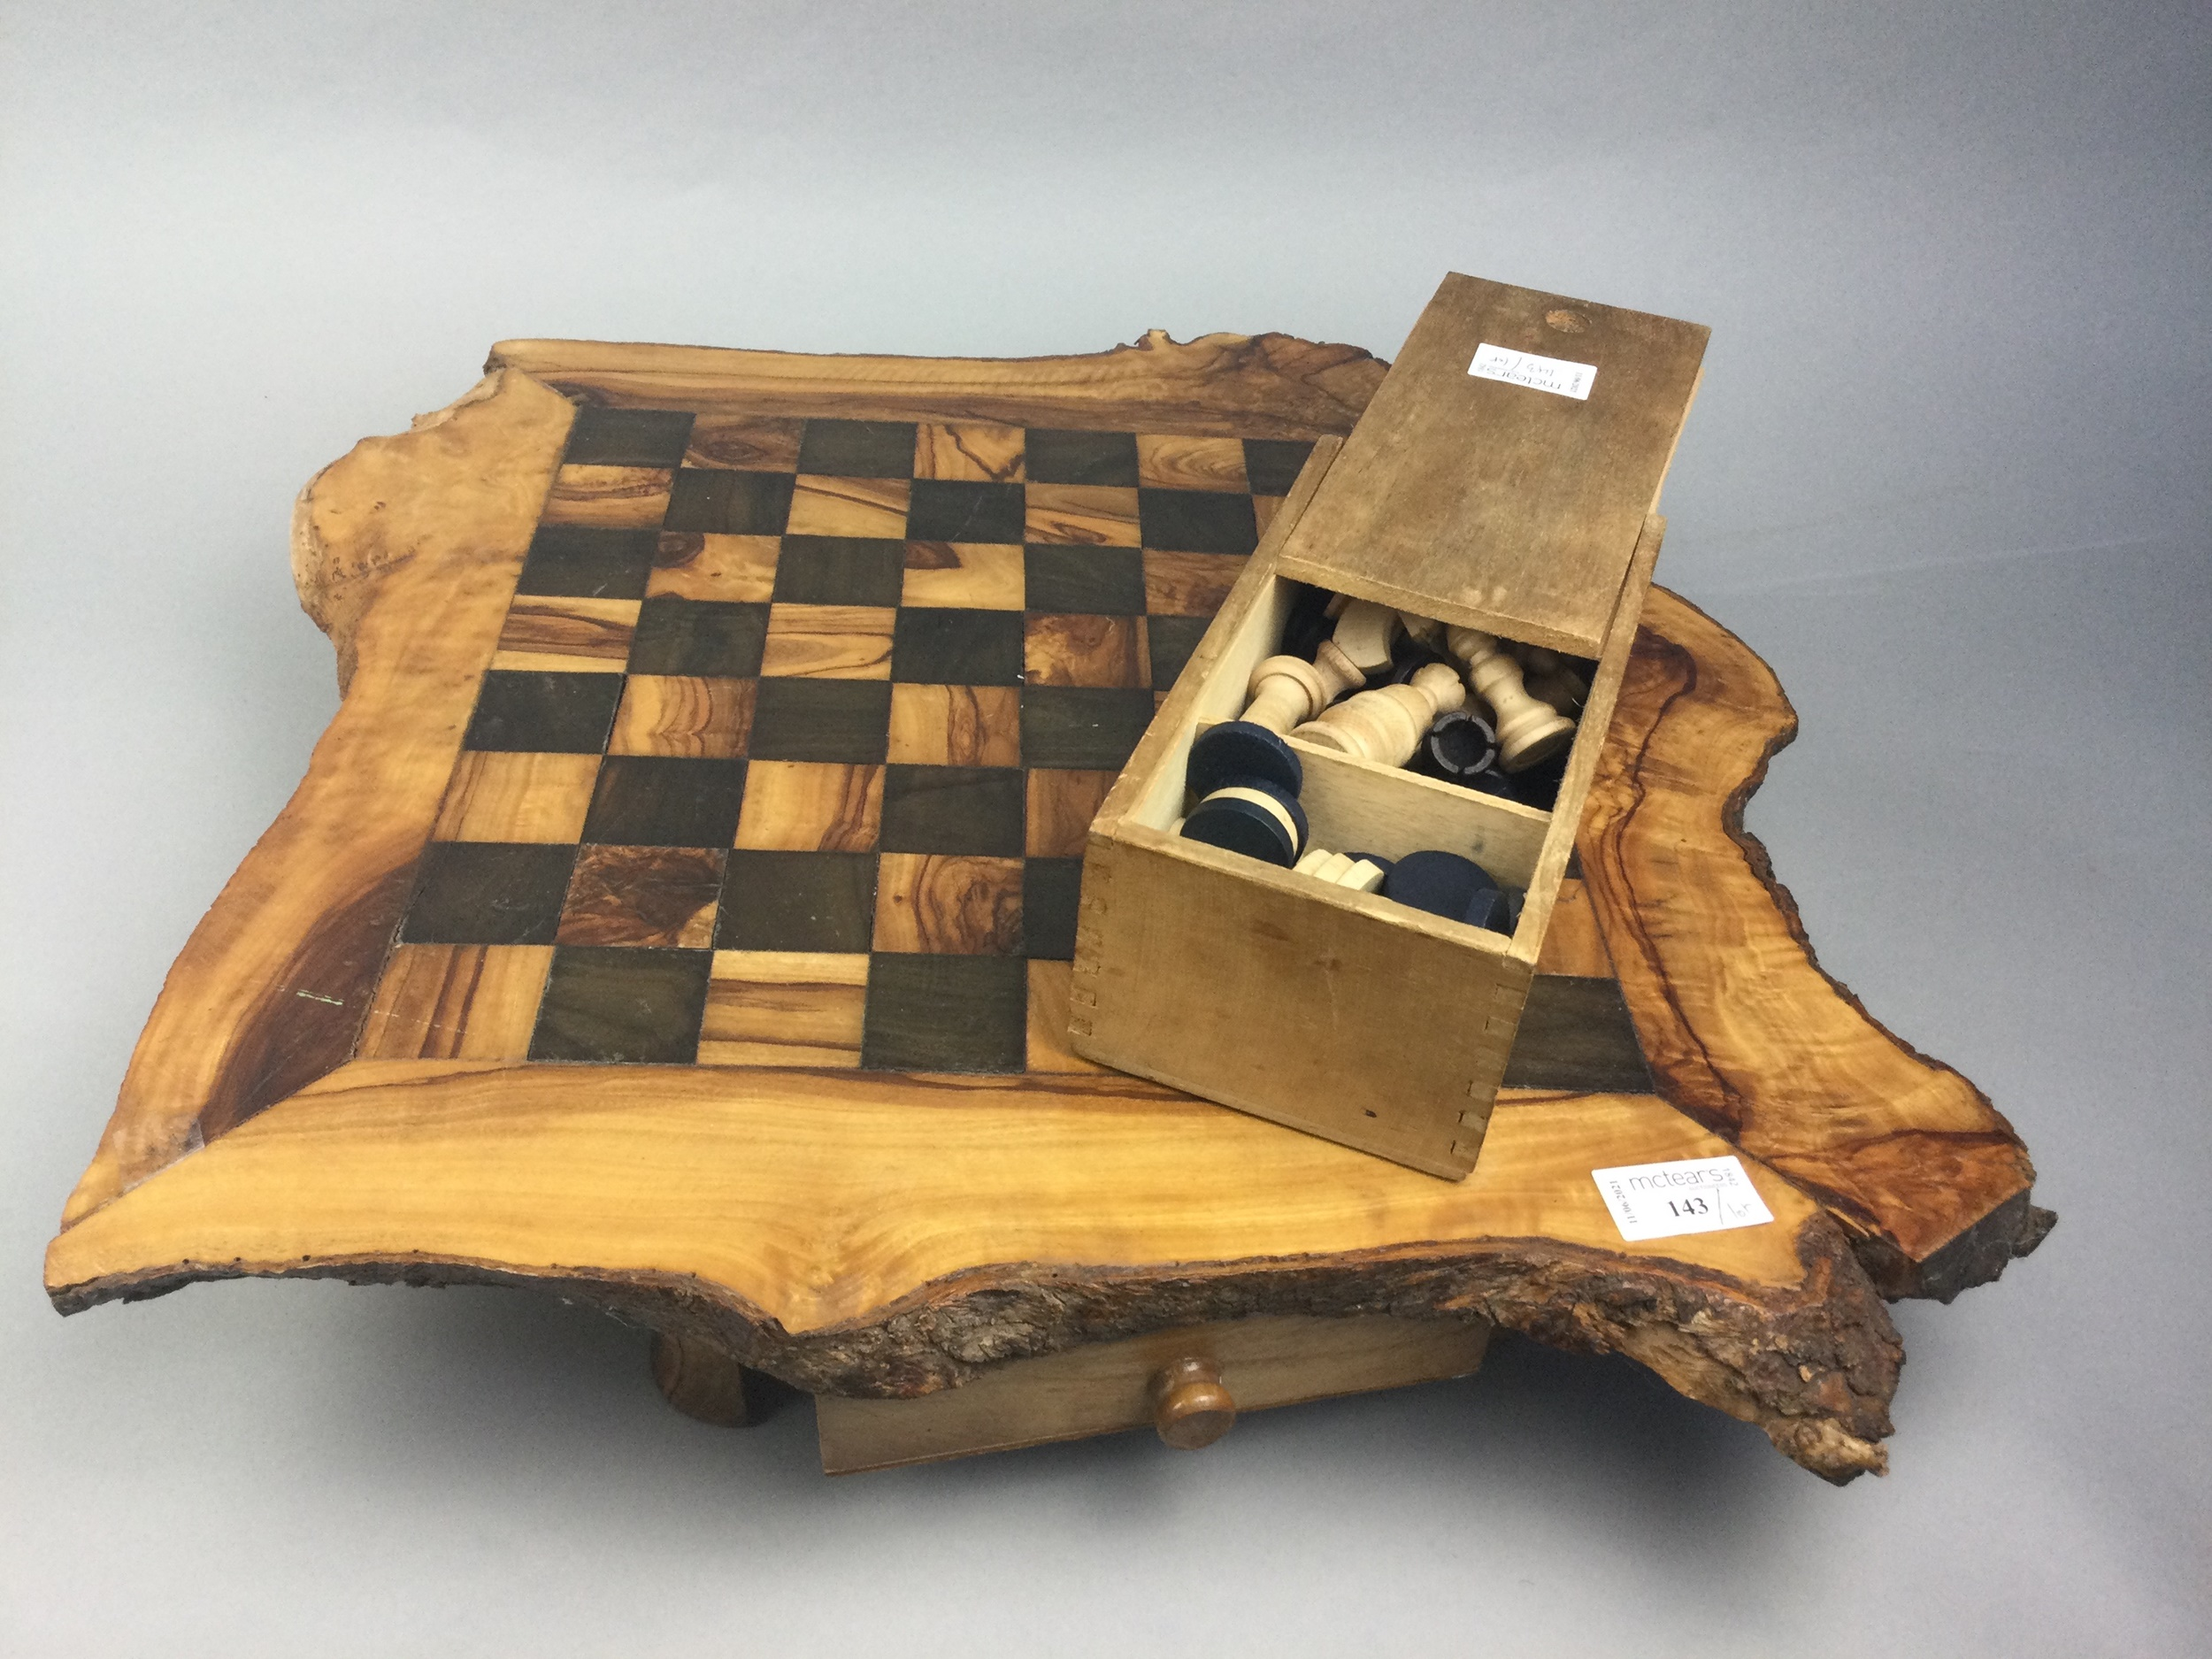 A WOODEN GAMES BOARD WITH CHESS AND DRAUGHTS